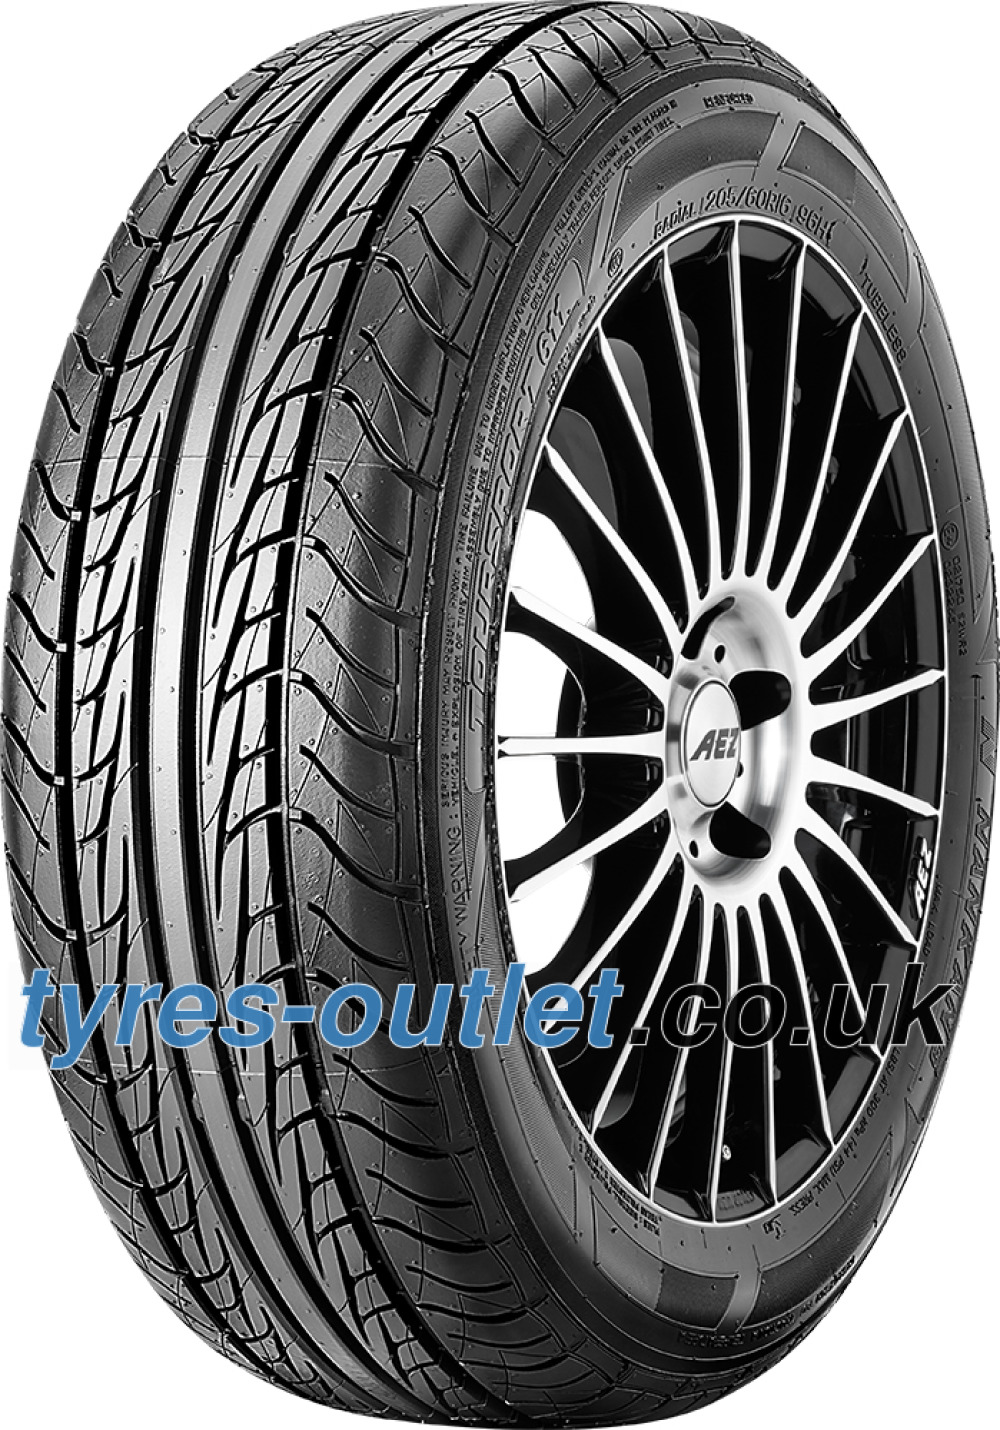 Nankang Toursport XR611 ( 215/65 R15 96H with rim protection (MFS) )